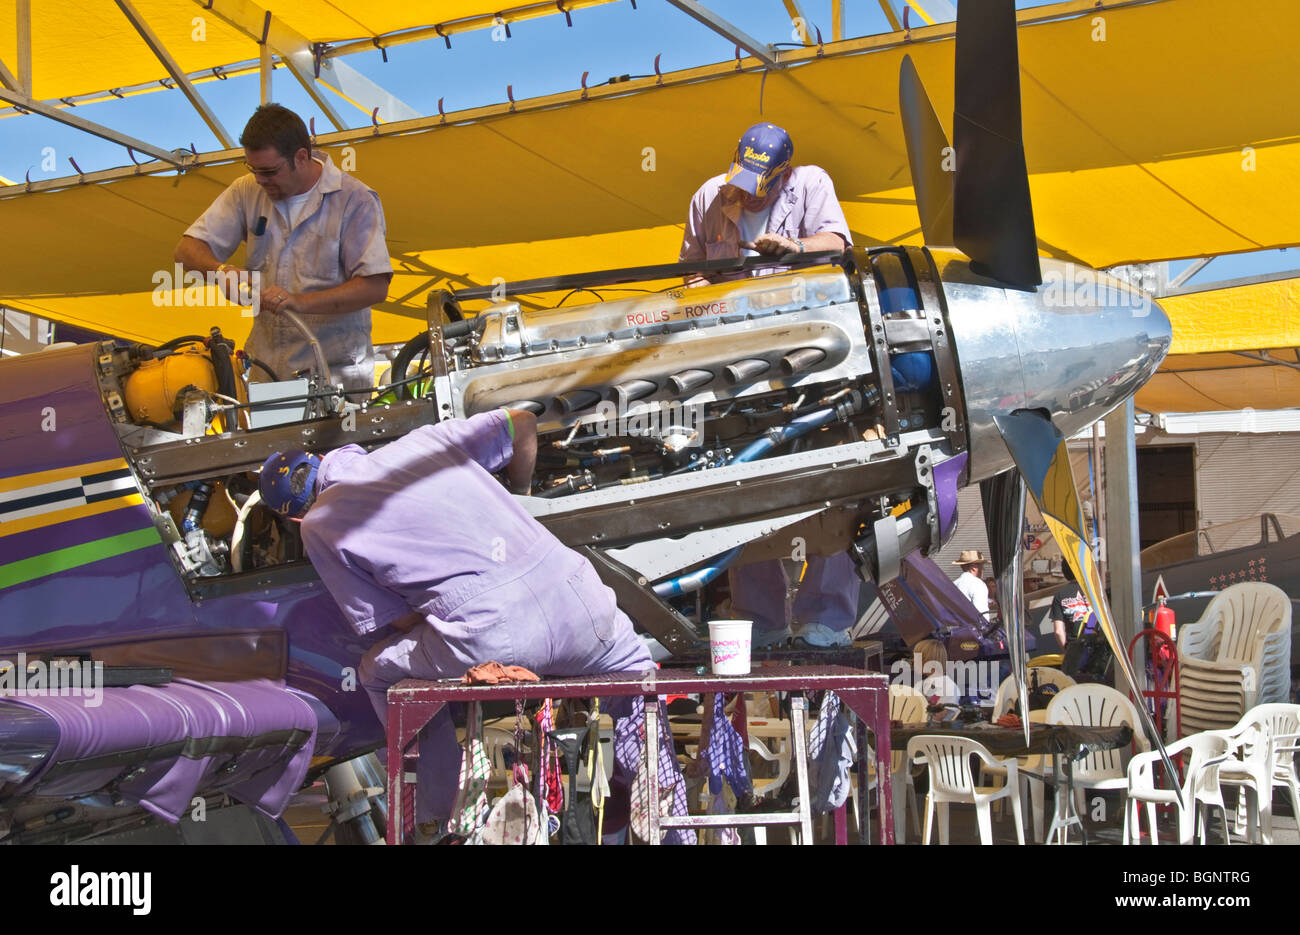 Nevada Reno Air Races P-51 Mustang race airplane mechanics in pits working on 12 cylinder Rolls - Royce engine - Stock Image